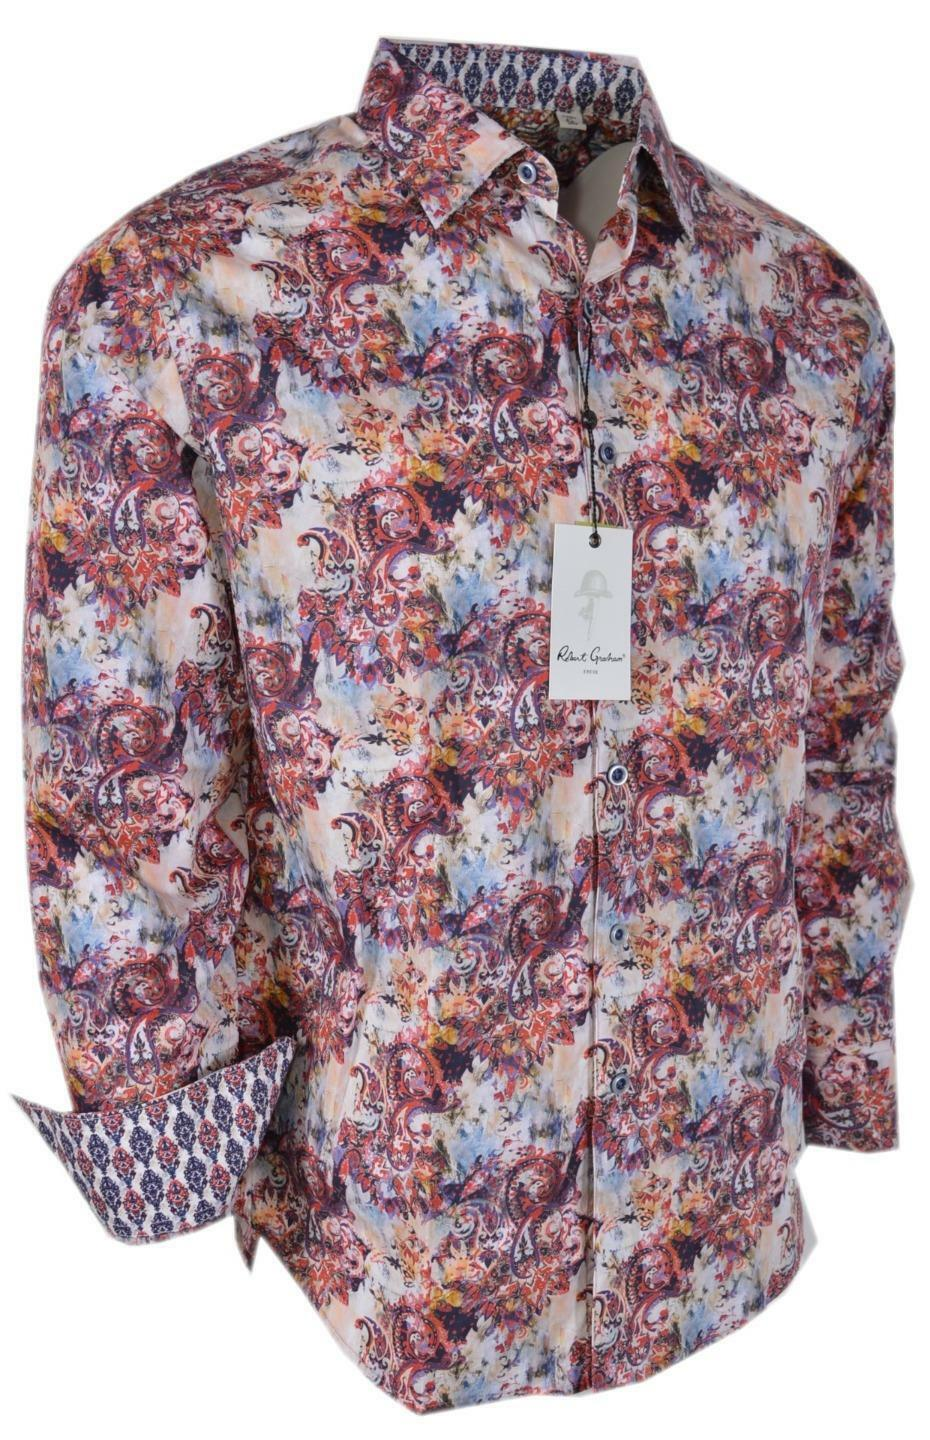 NEW Robert Graham  ENTERTAINER Paisley Print Classic Fit Sports Shirt